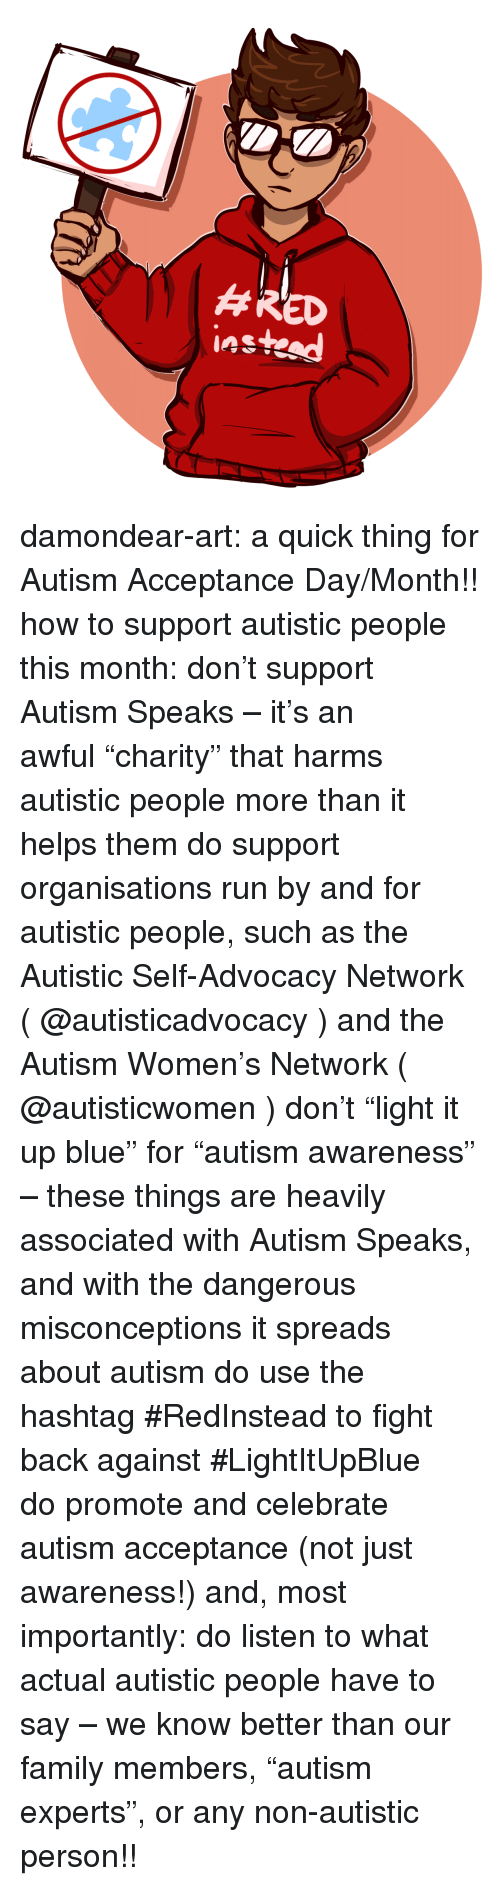 "know better: damondear-art:  a quick thing for Autism Acceptance Day/Month!! how to support autistic people this month:  don't support Autism Speaks – it's an awful ""charity"" that harms autistic people more than it helps them  do support organisations run by and for autistic people, such as the Autistic Self-Advocacy Network ( @autisticadvocacy​ ) and the Autism Women's Network ( @autisticwomen​ )  don't ""light it up blue"" for ""autism awareness"" – these things are heavily associated with Autism Speaks, and with the dangerous misconceptions it spreads about autism  do use the hashtag #RedInstead to fight back against #LightItUpBlue  do promote and celebrate autism acceptance (not just awareness!) and, most importantly:  do listen to what actual autistic people have to say – we know better than our family members, ""autism experts"", or any non-autistic person!!"